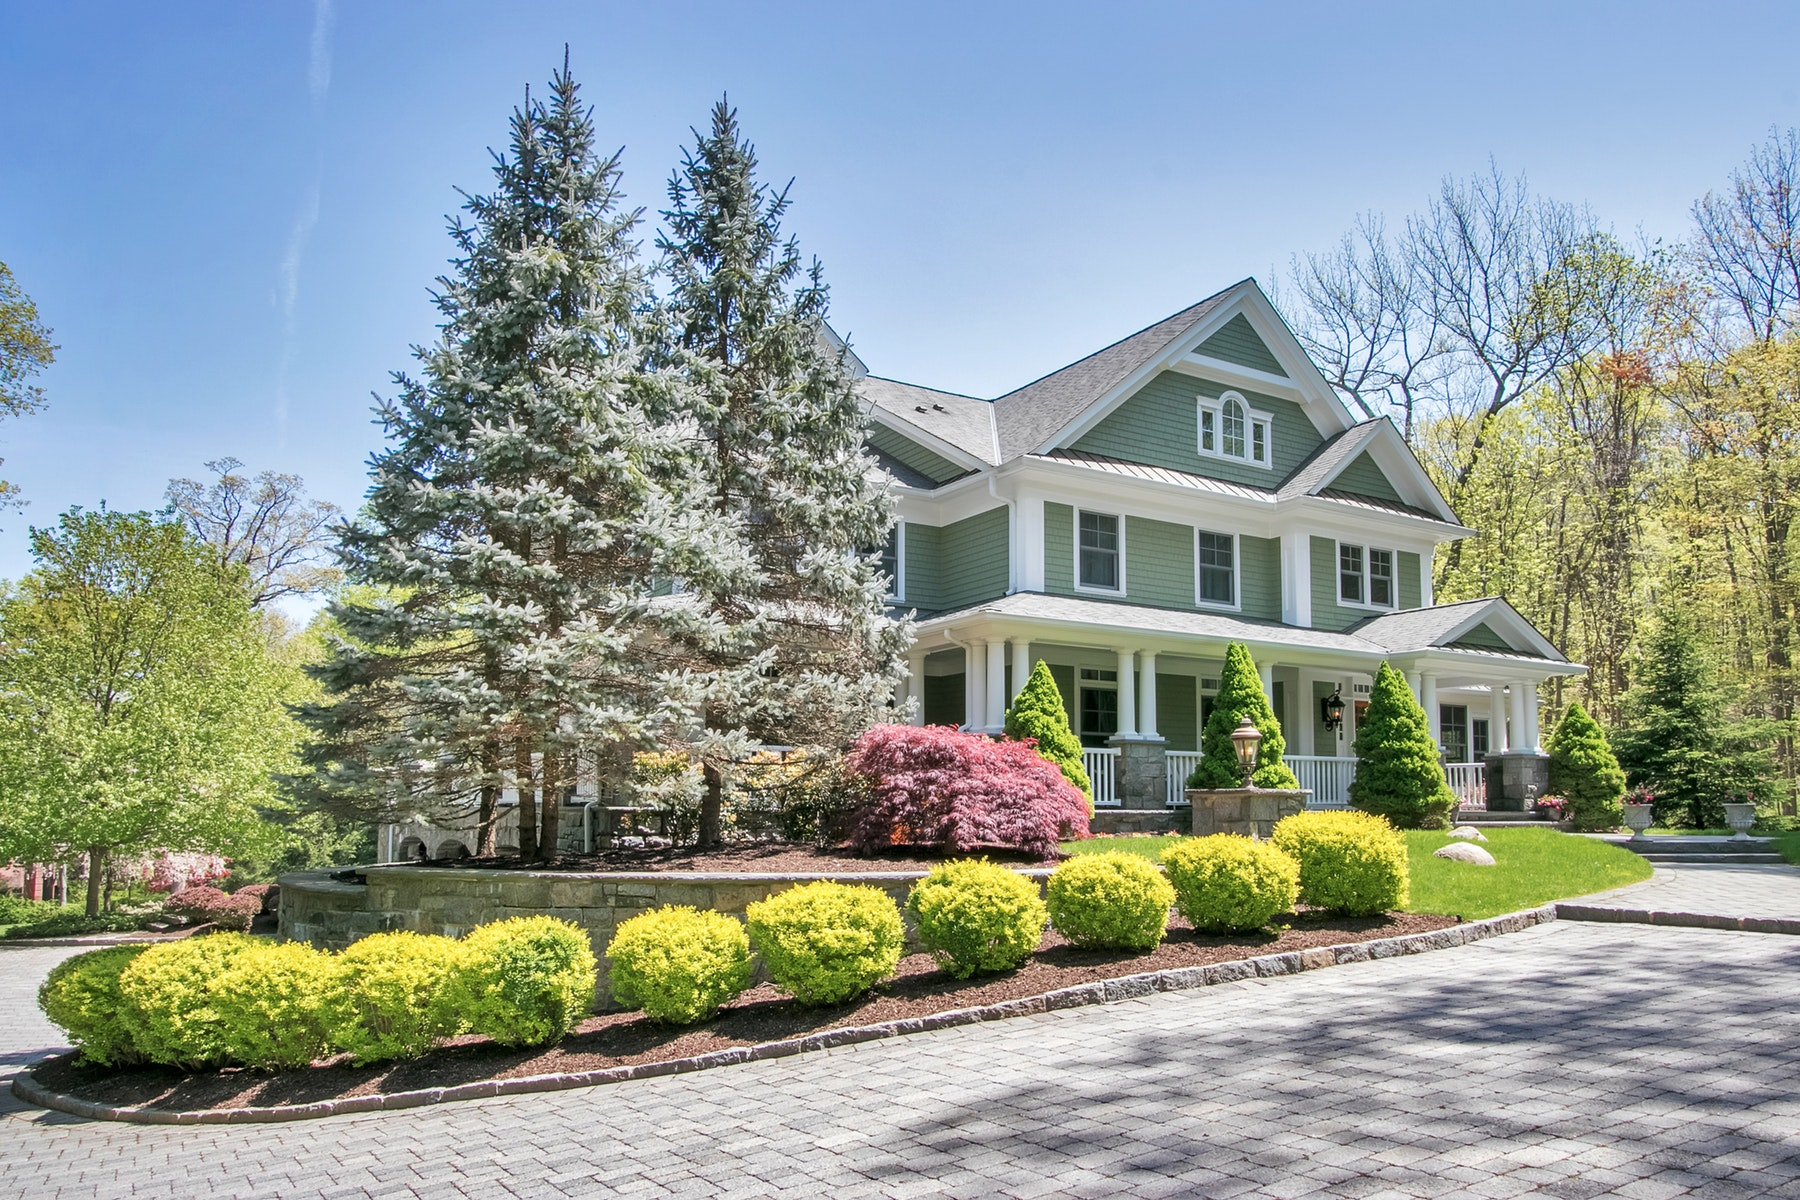 Single Family Homes for Sale at Luxury and Architectural Perfection 5 Pine Hill Road Tuxedo Park, New York 10987 United States